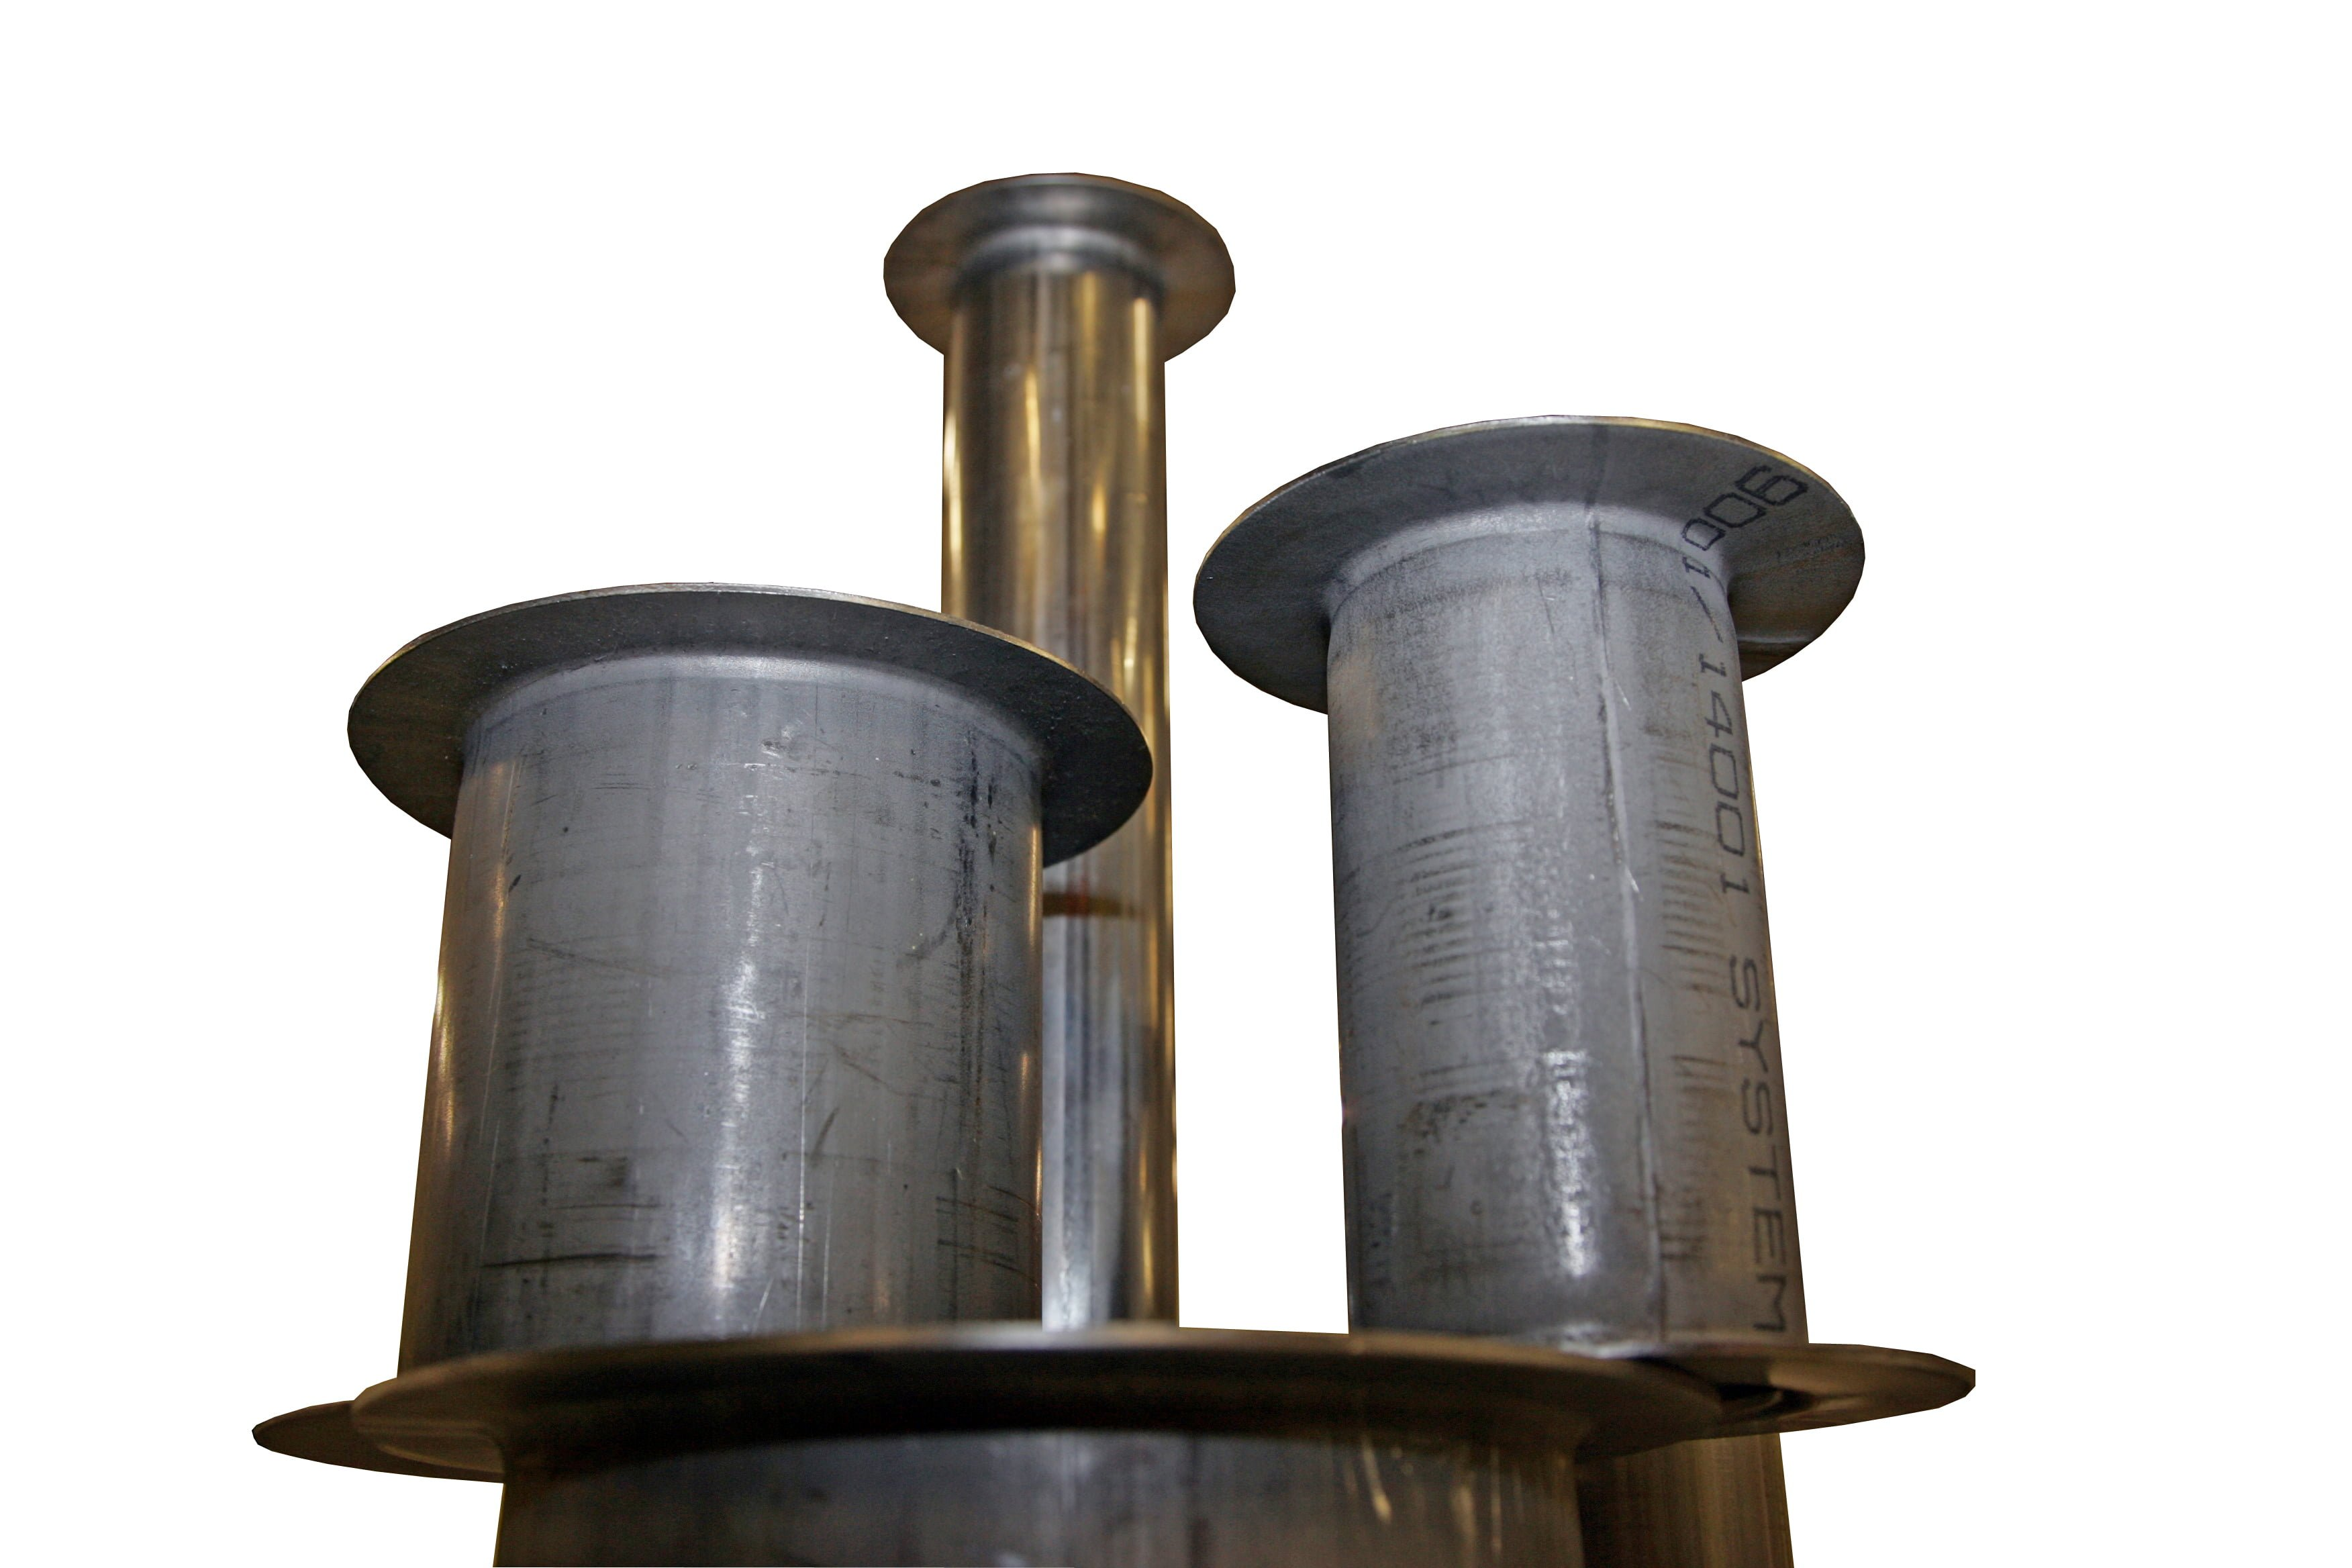 Flanged pipework